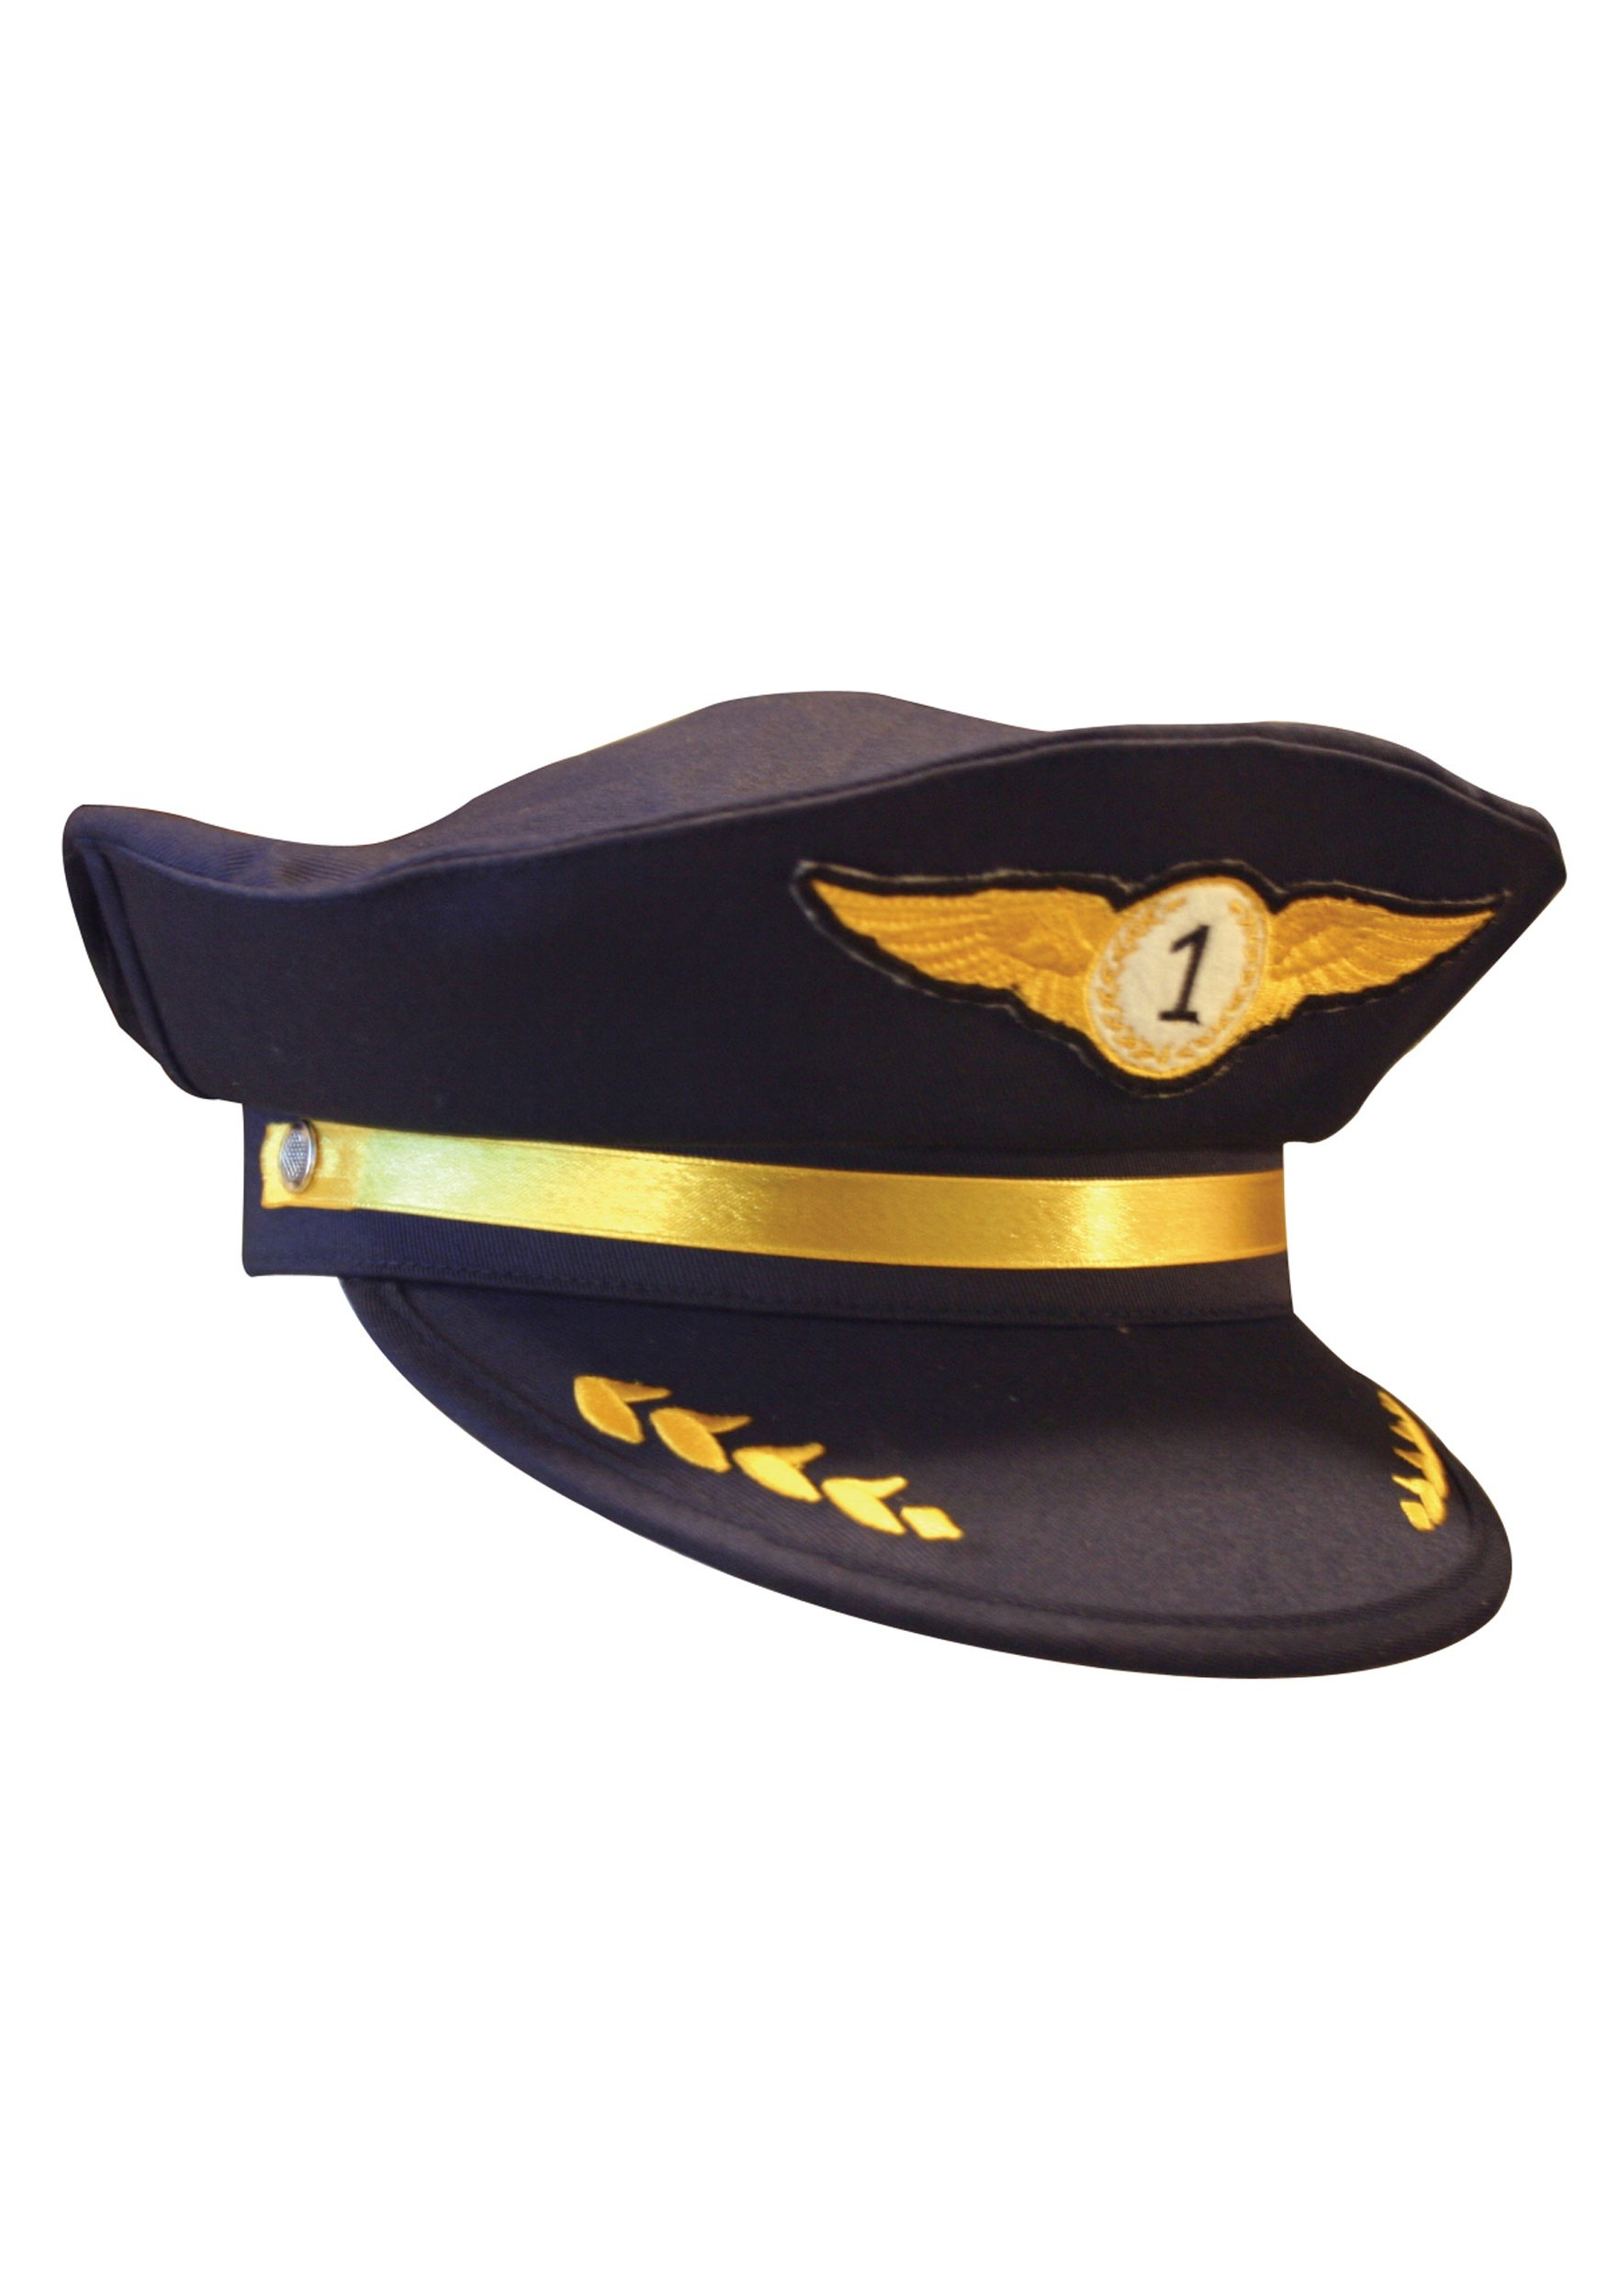 Airline Pilot Hat for Kids 93b5460ea0b